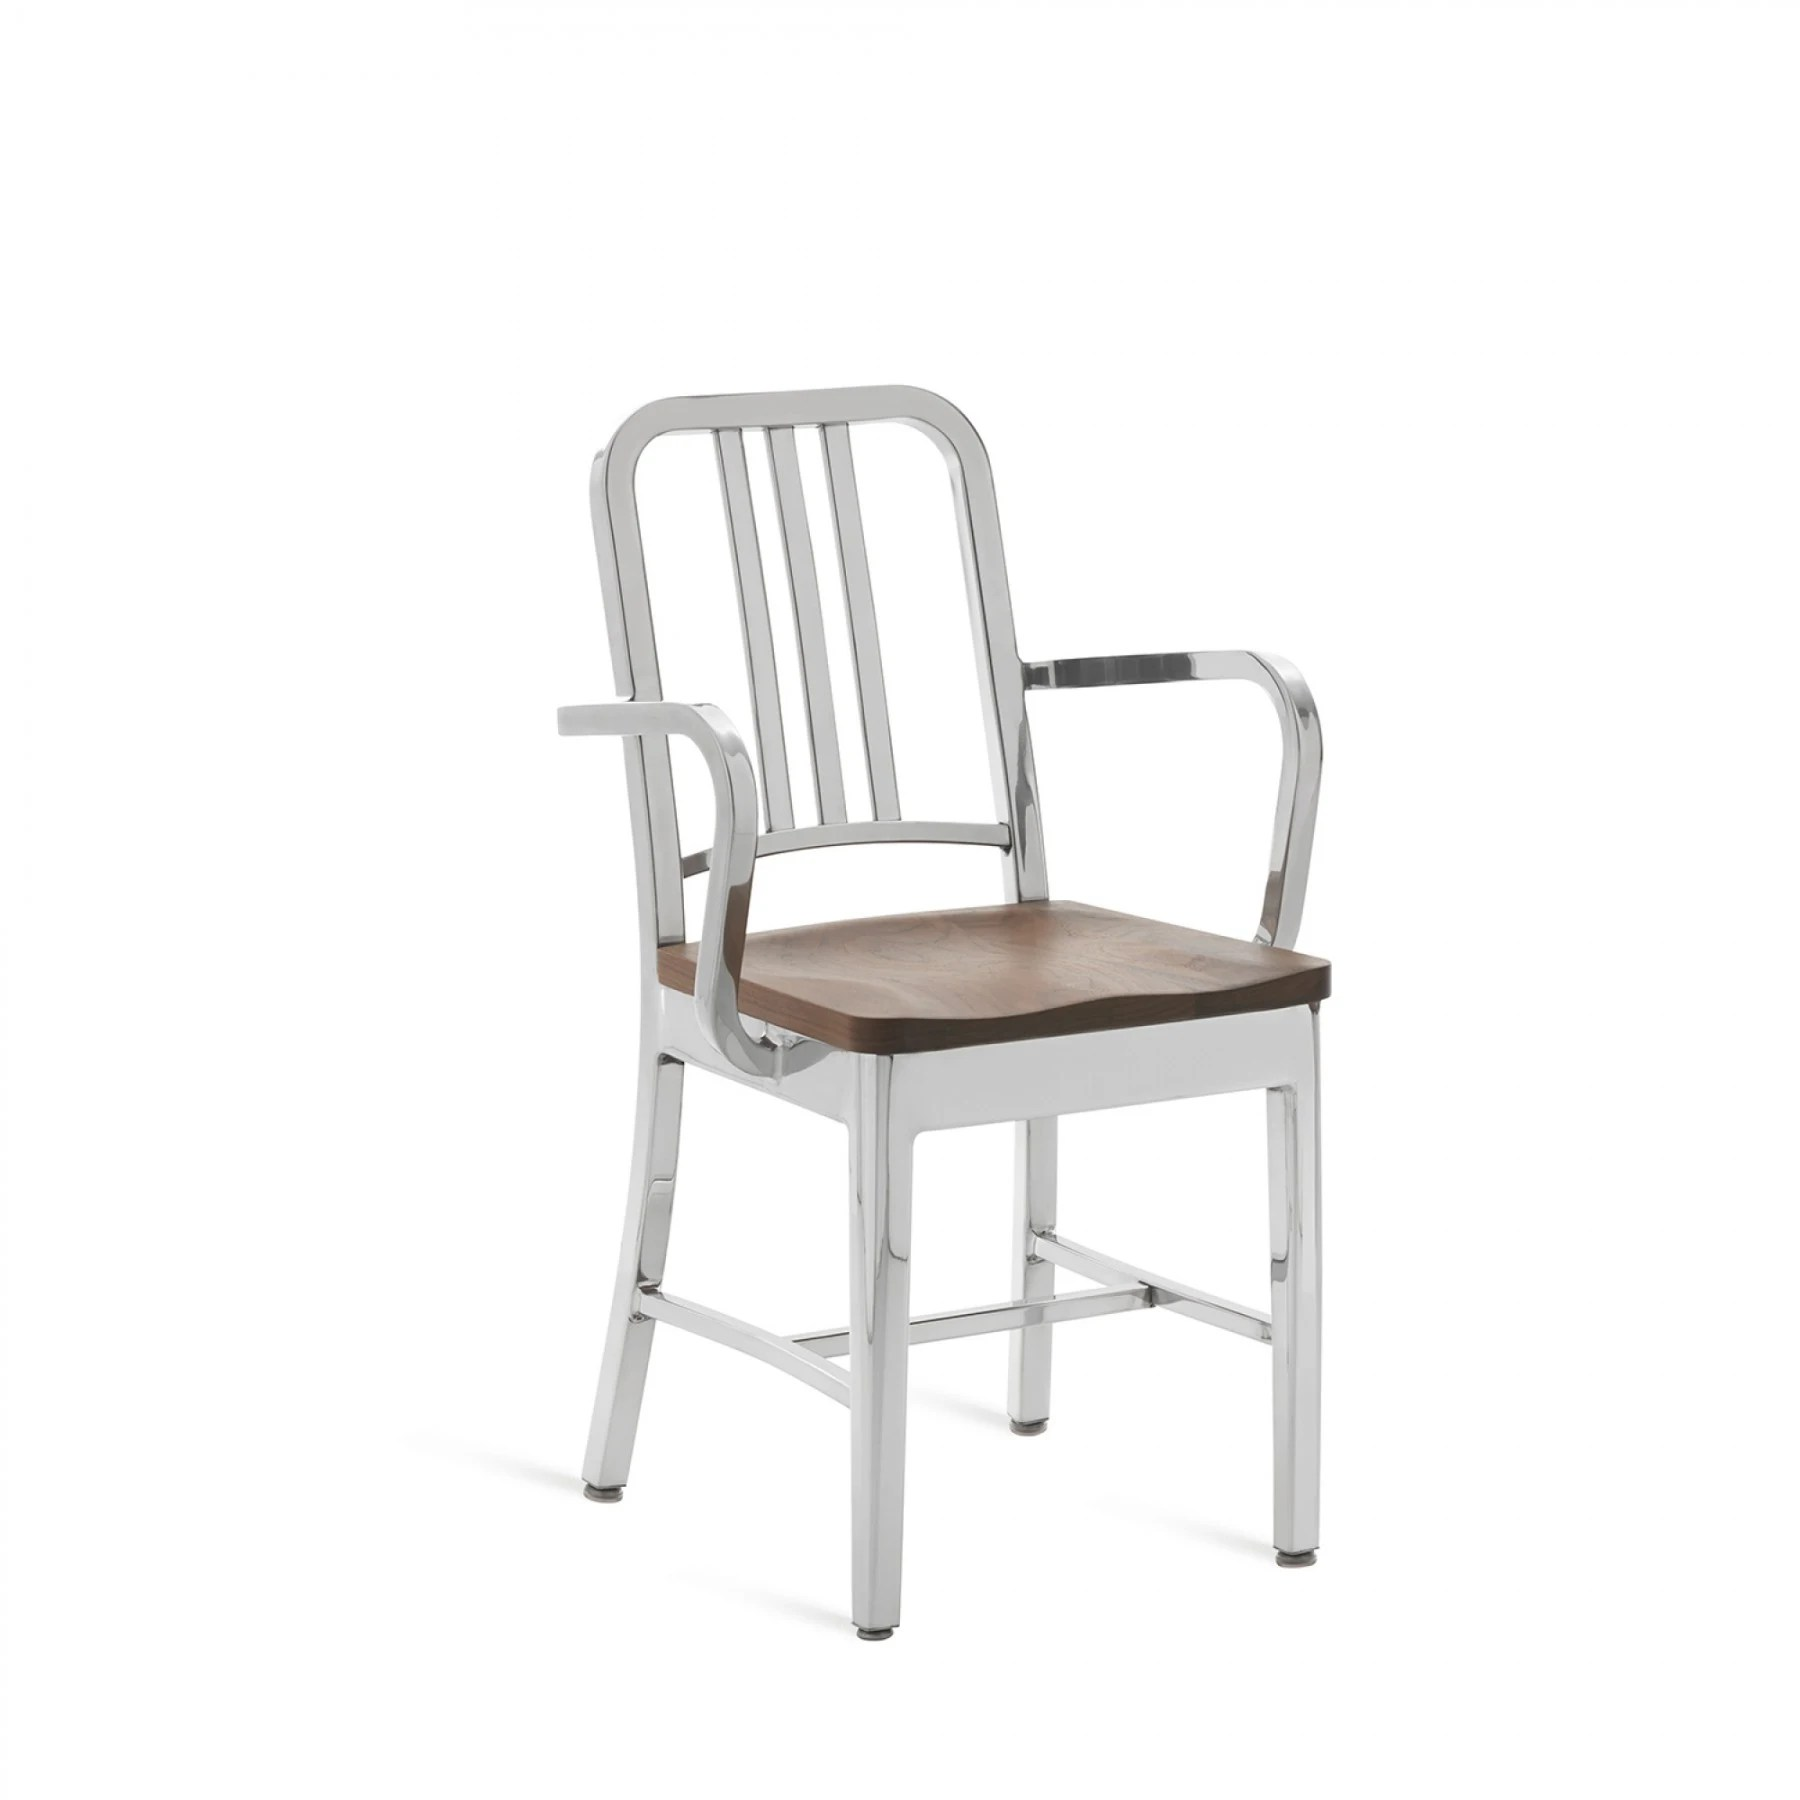 navy chair stool rental atlanta emeco arm with natural wood seat modern planet